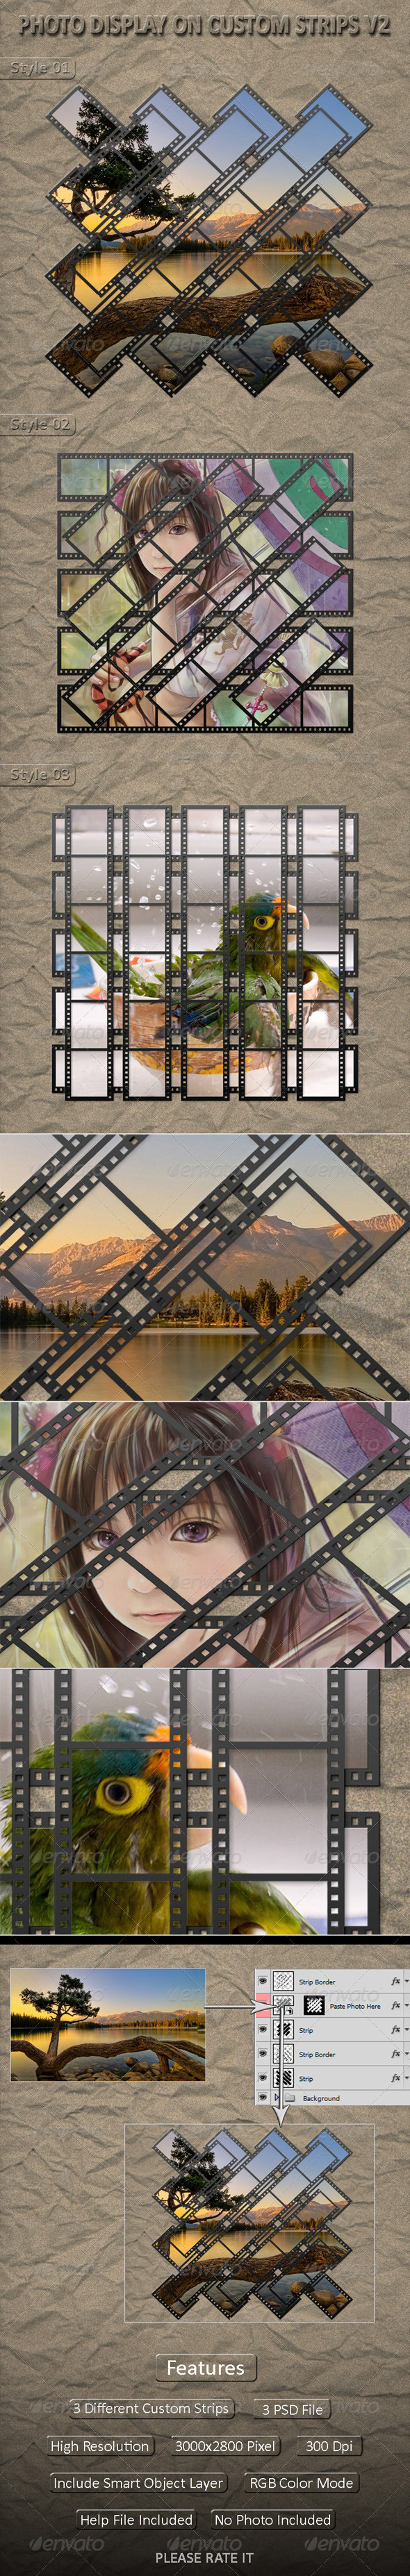 GraphicRiver Photo Display on Custom Strips V2 5024635